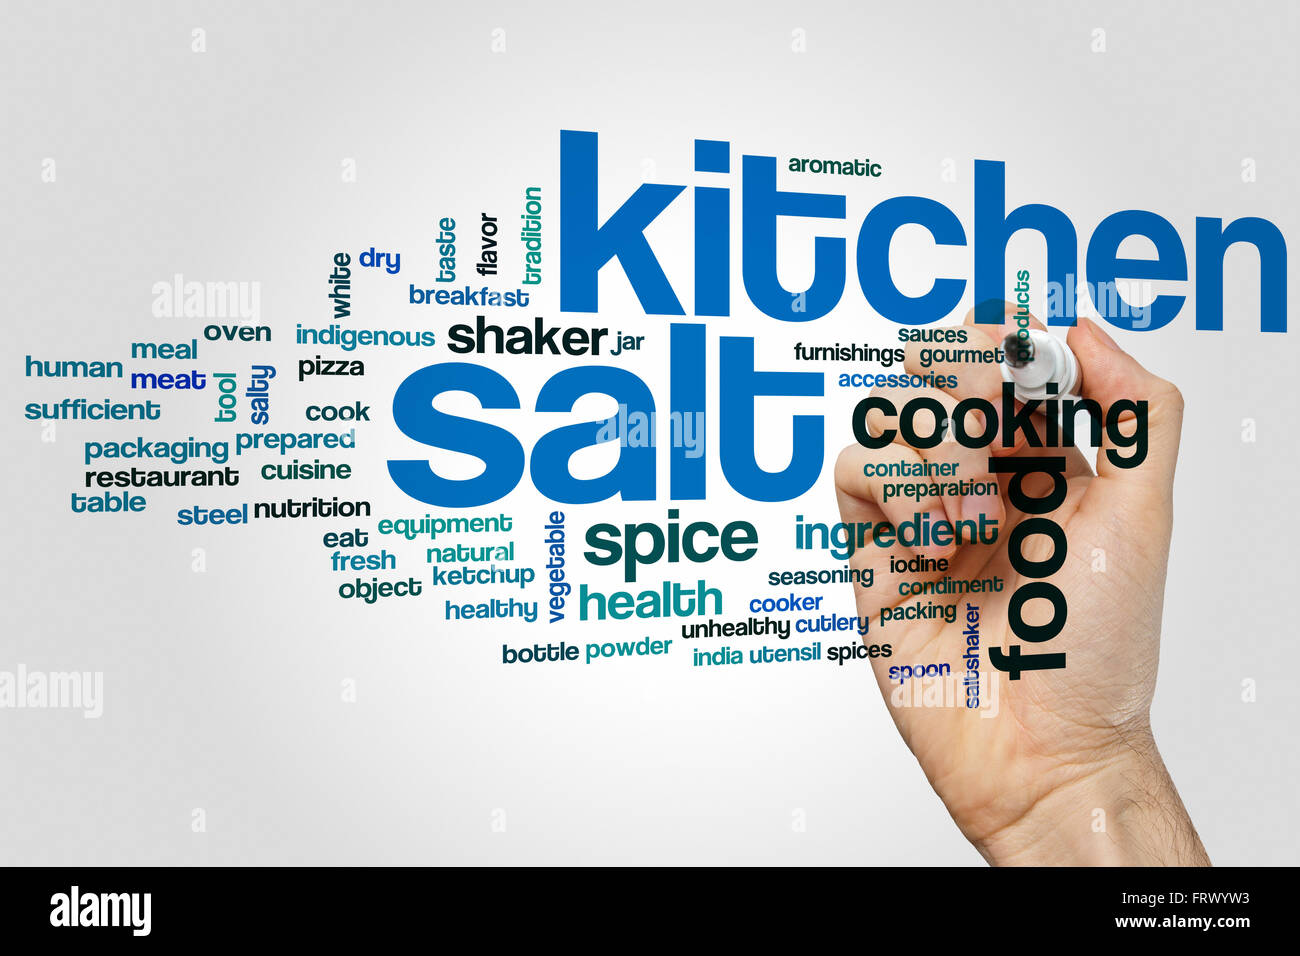 Cuisine Word Cloud Stockfotos & Cuisine Word Cloud Bilder - Seite 2 ...